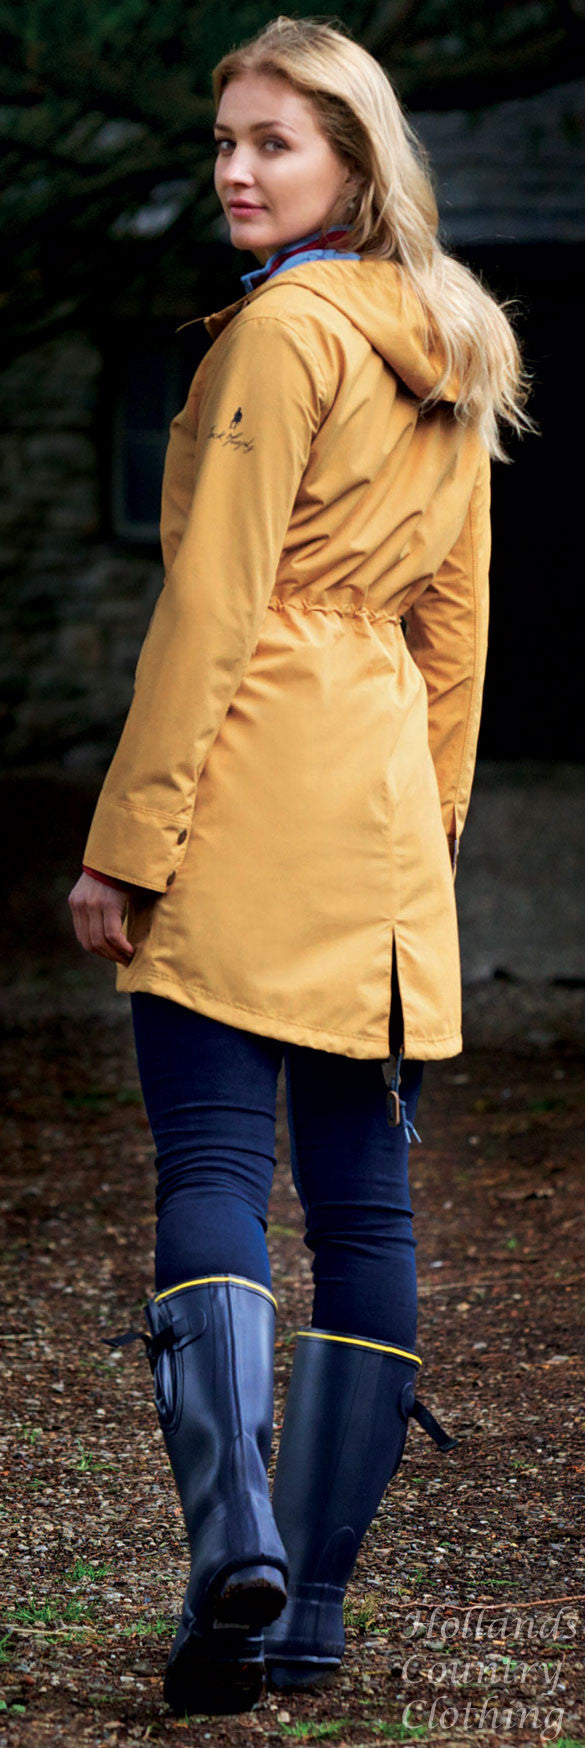 lady wearing Jack Murphy Sligo Wellington - Rubber with Neoprene Lining.